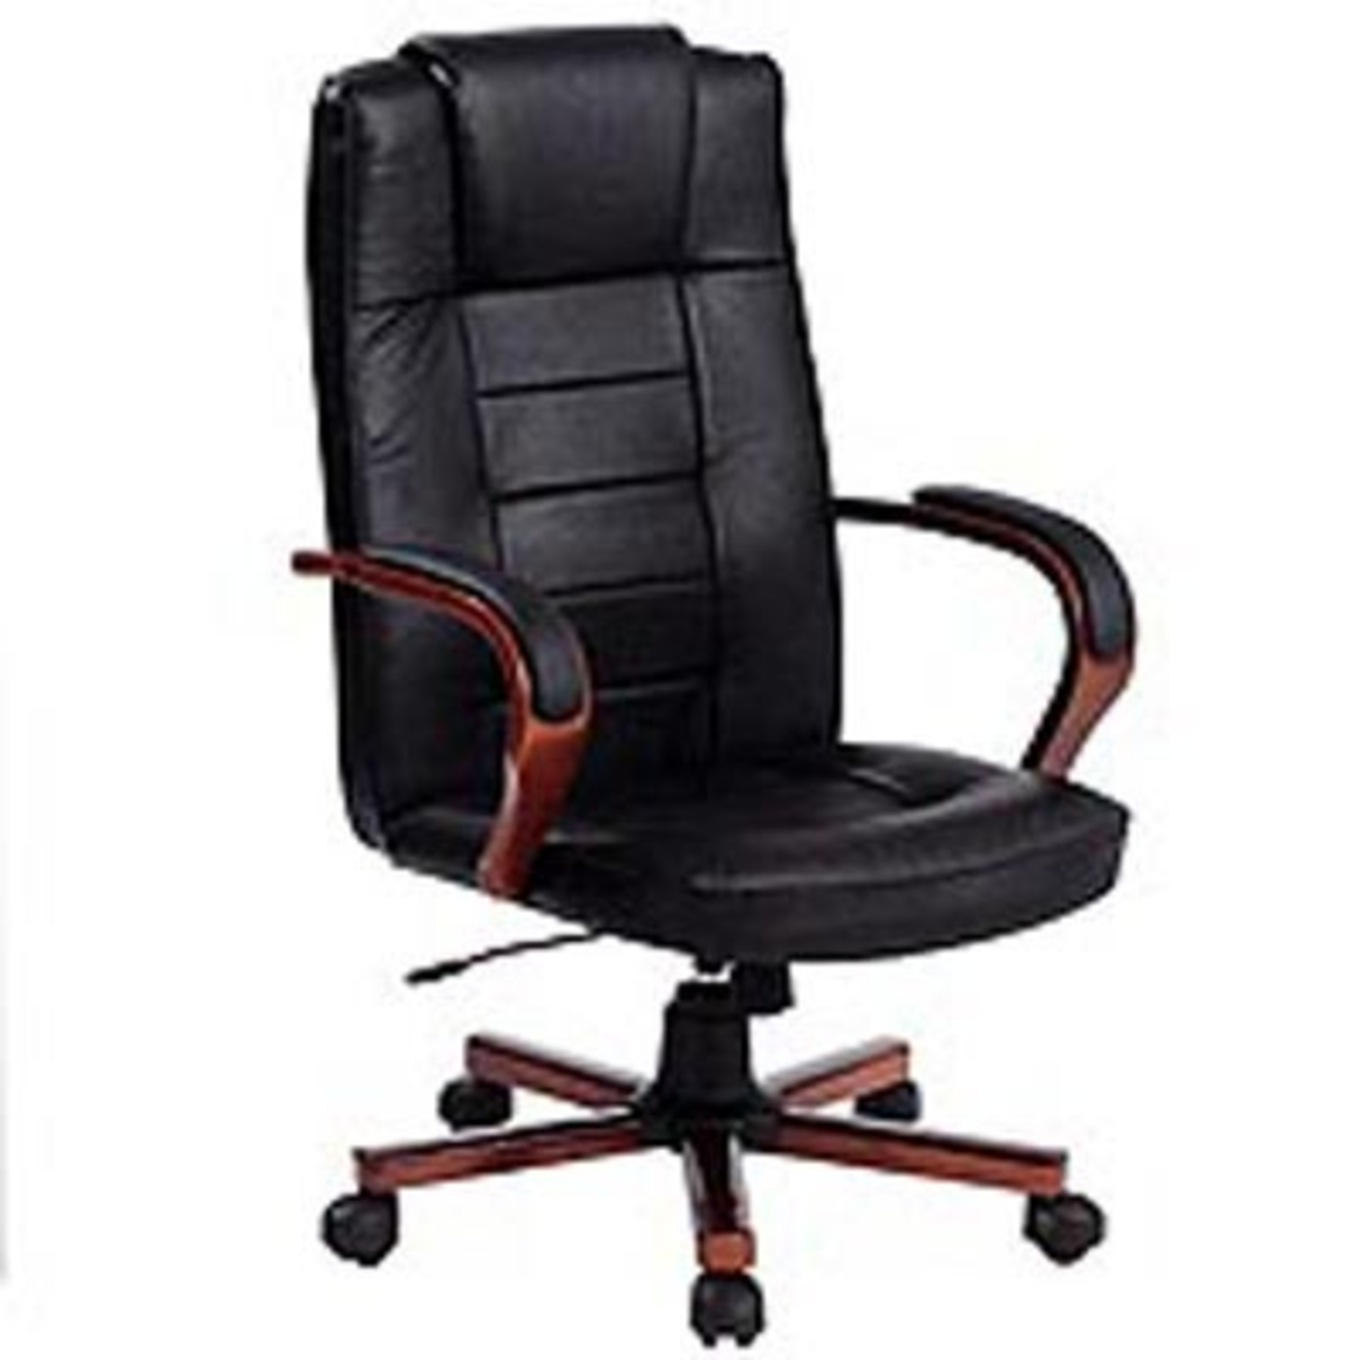 avis fauteuil gamer le coin gamer. Black Bedroom Furniture Sets. Home Design Ideas